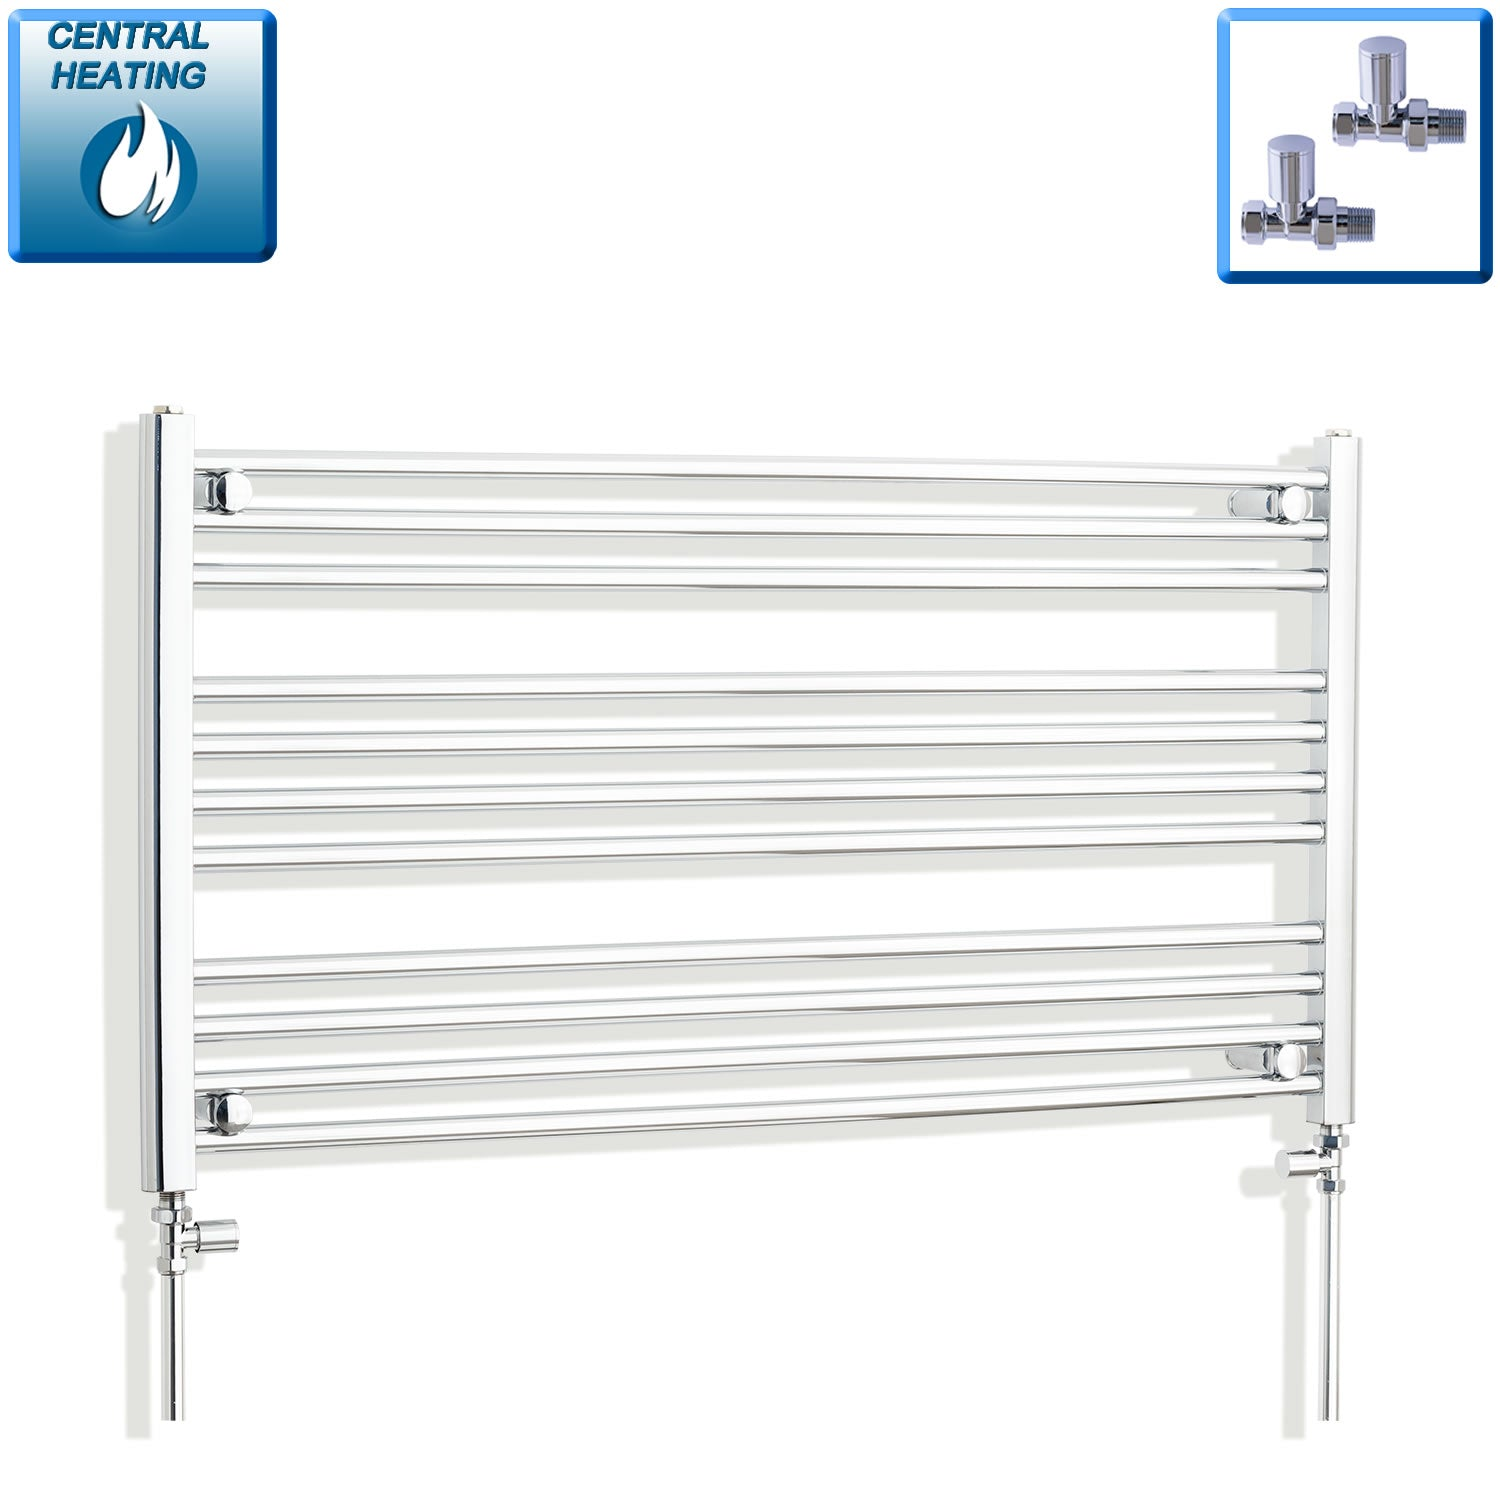 1000mm Wide 600mm High Chrome Towel Rail Radiator With Straight Valve